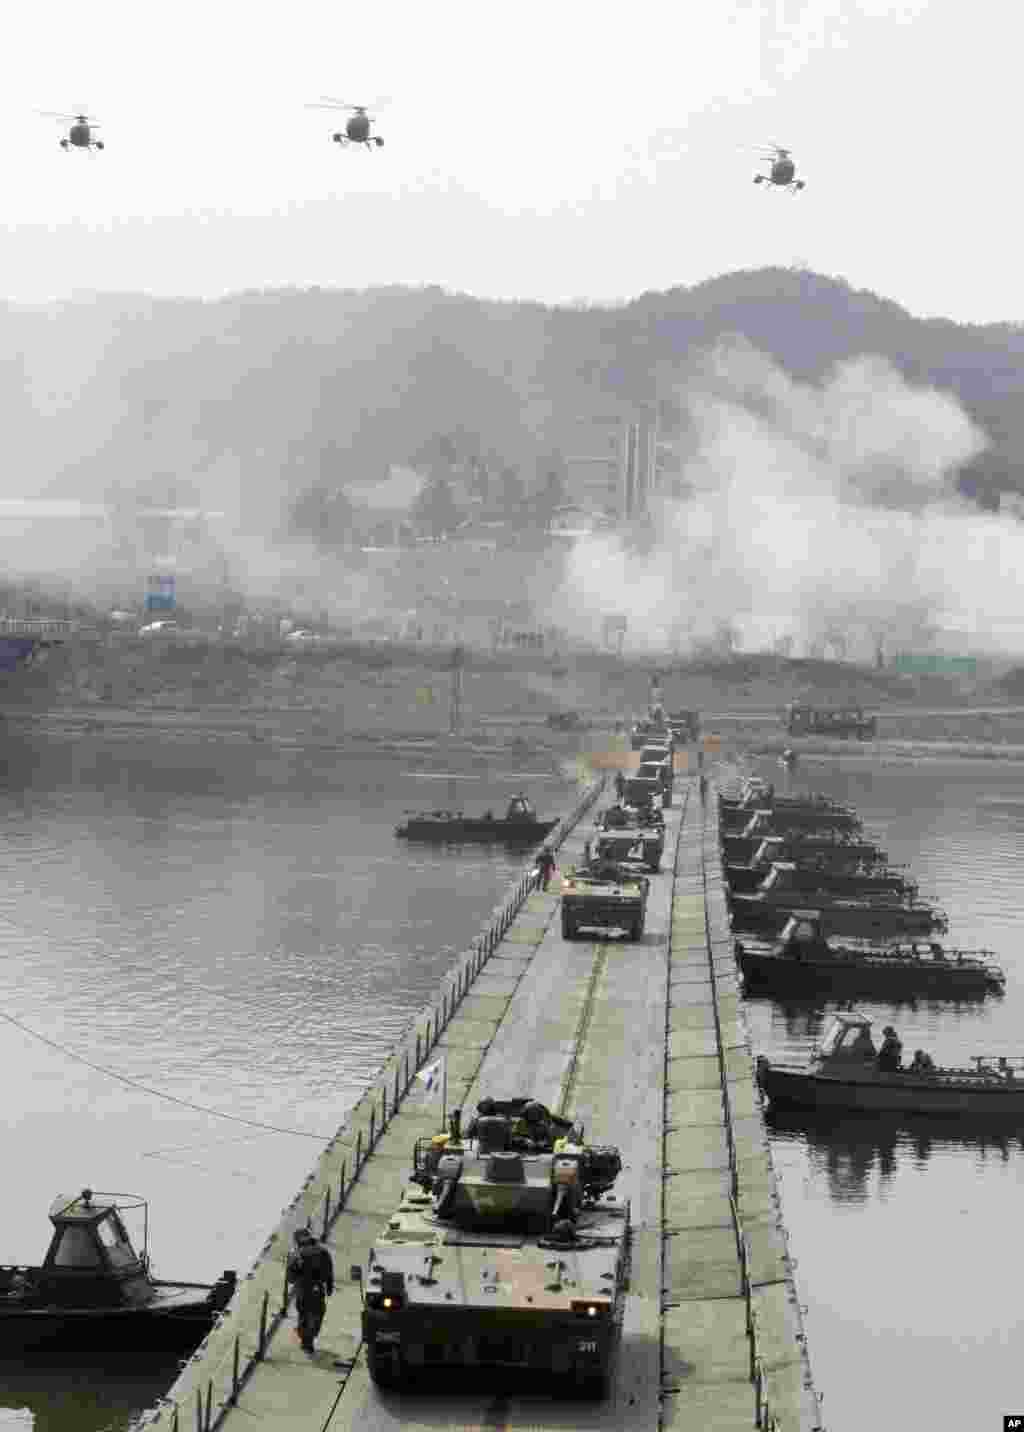 South Korean Army armored vehicles cross a pontoon bridge during an exercise against possible attacks by North Korea near the demilitarized zone in Hwacheon, South Korea, April 1, 2013.